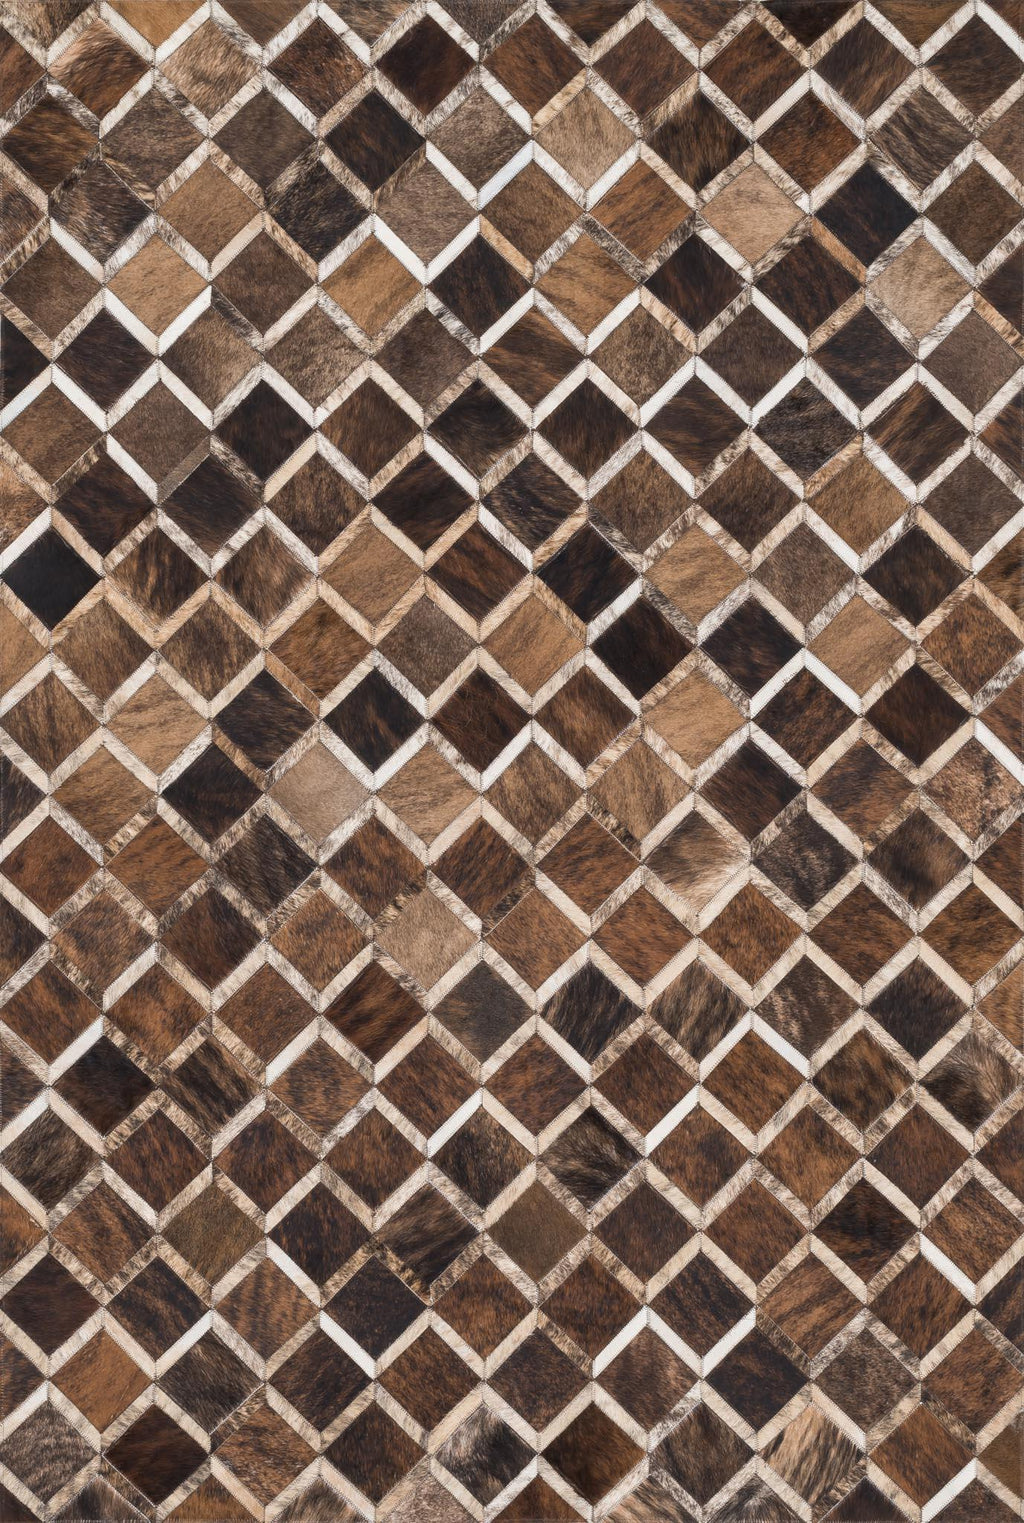 PROMENADE Collection Rug  in  BROWN Brown Small Hand-Woven Cowhide